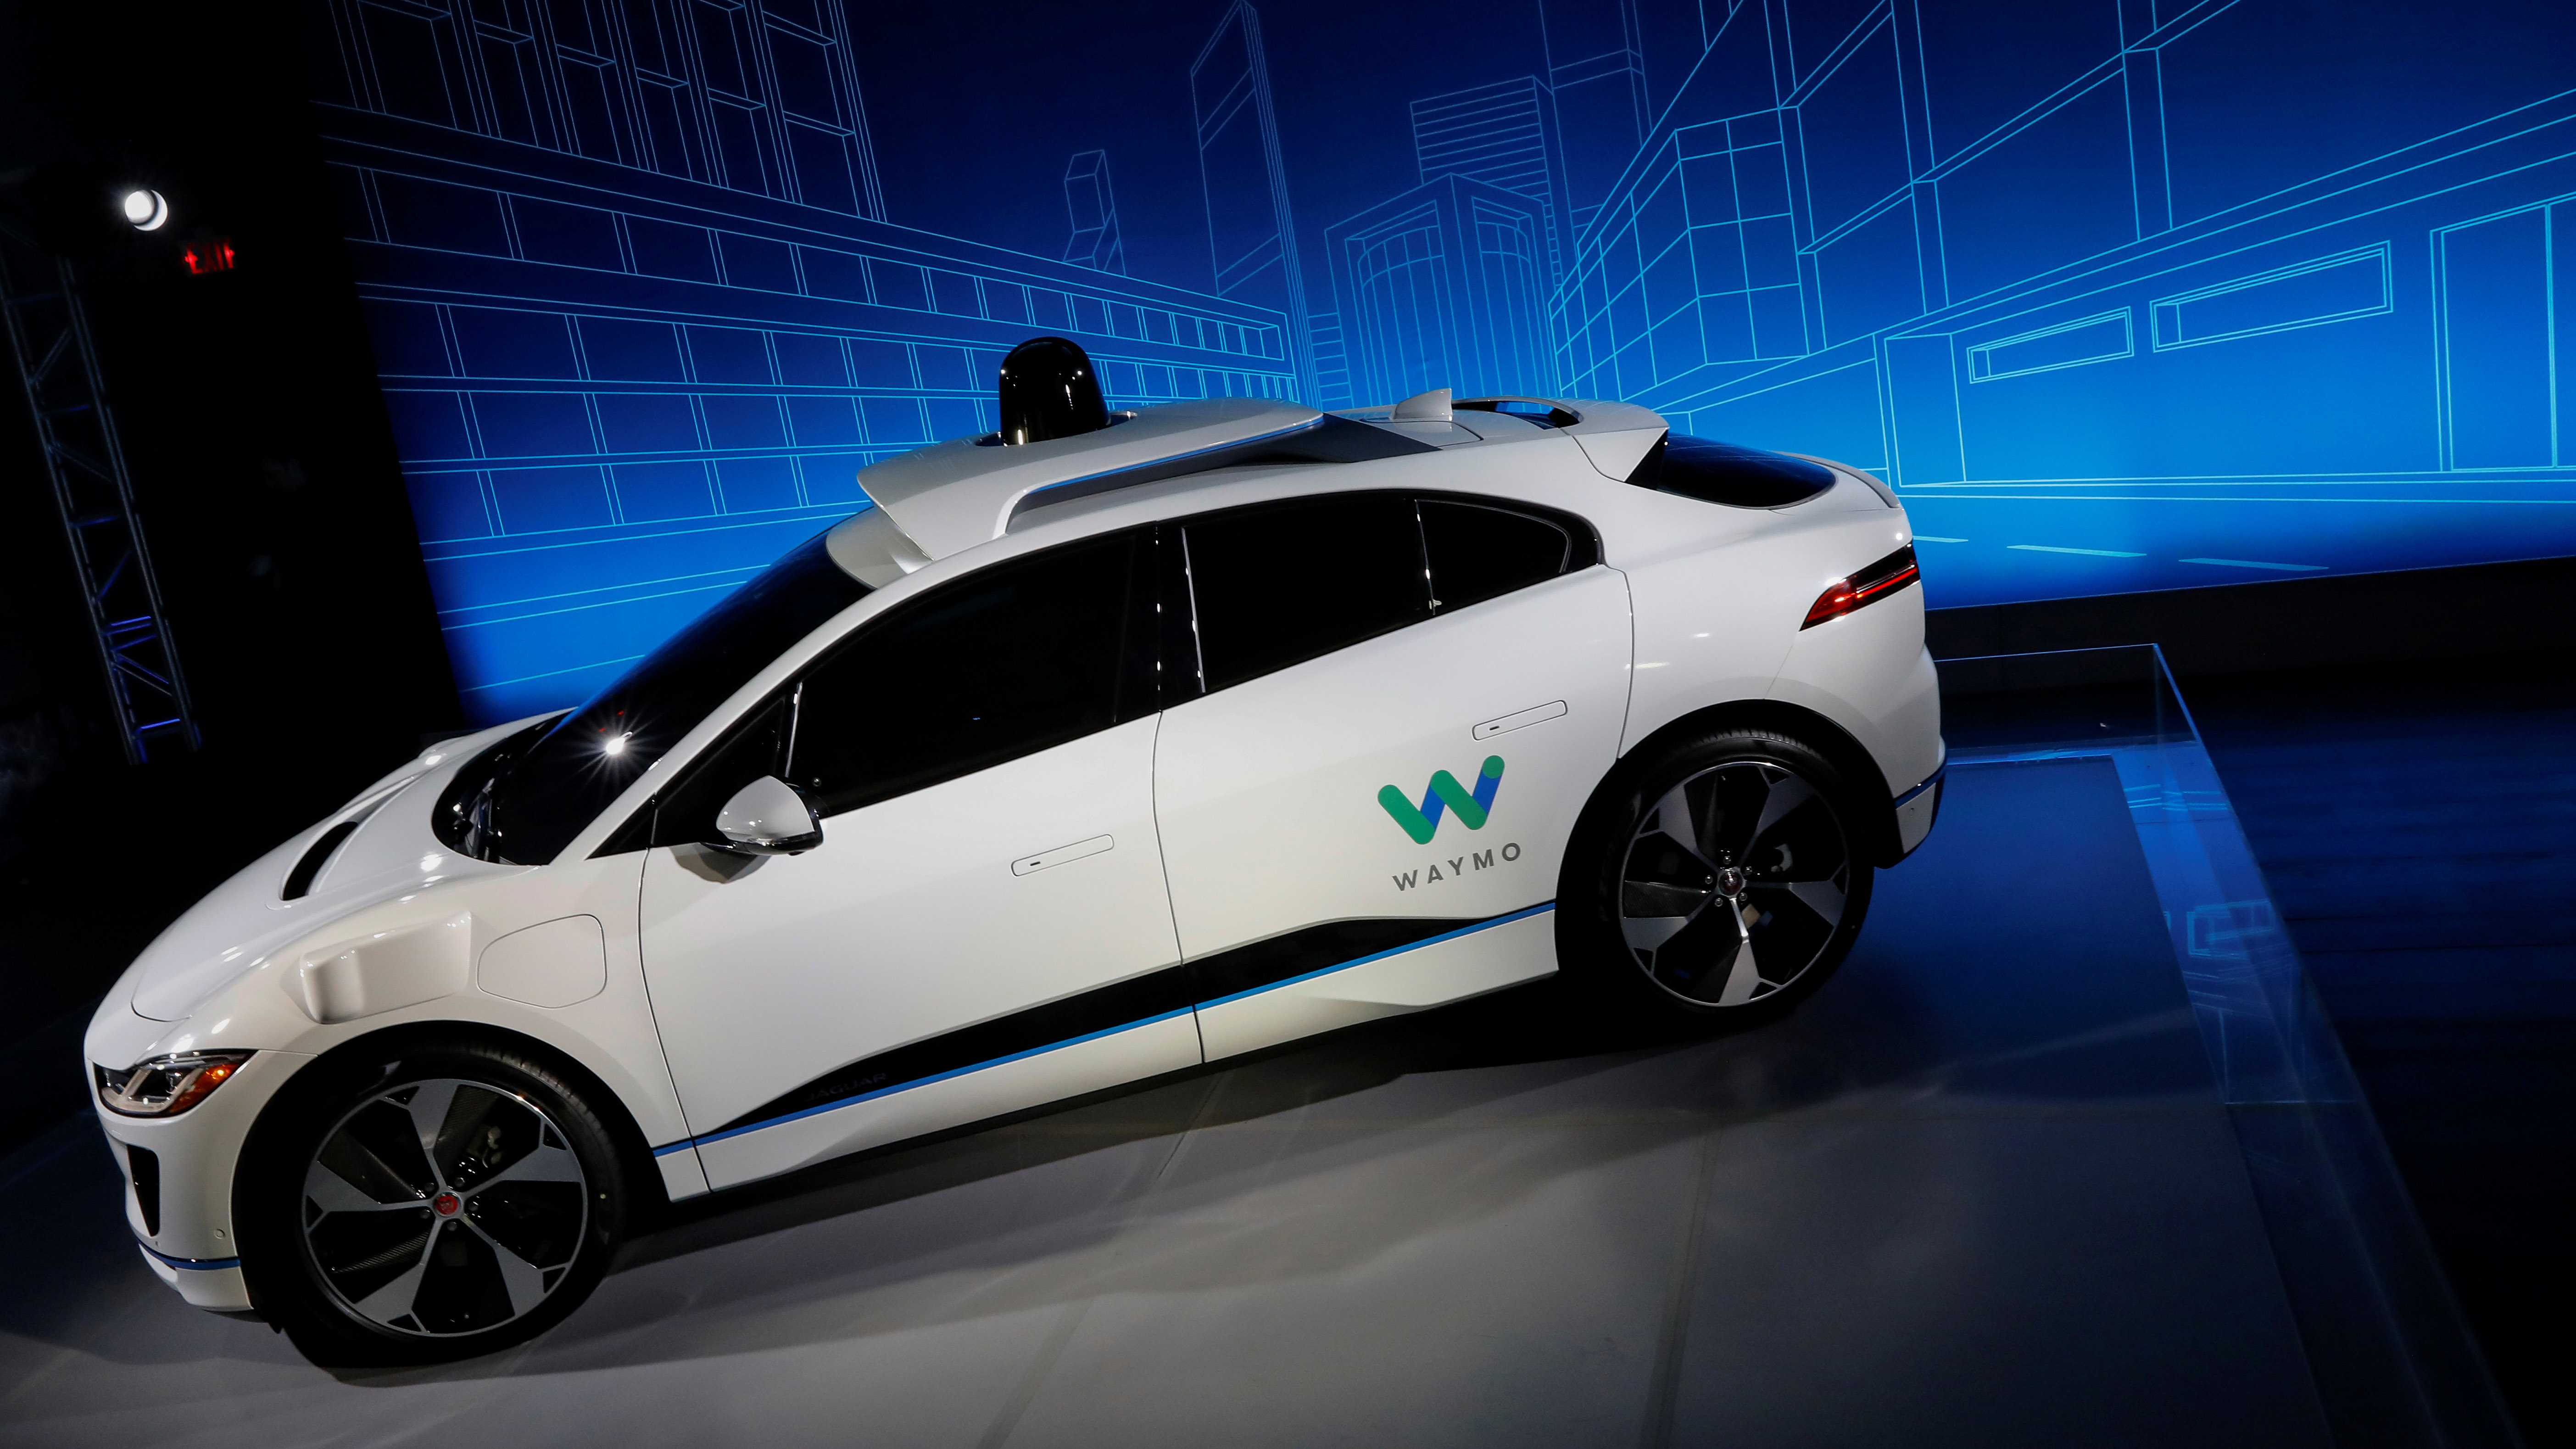 A Jaguar I-PACE self-driving car is pictured during its unveiling by Waymo in the Manhattan borough of New York City, U.S., March 27, 2018. REUTERS/Brendan McDermid - RC16939AAF40